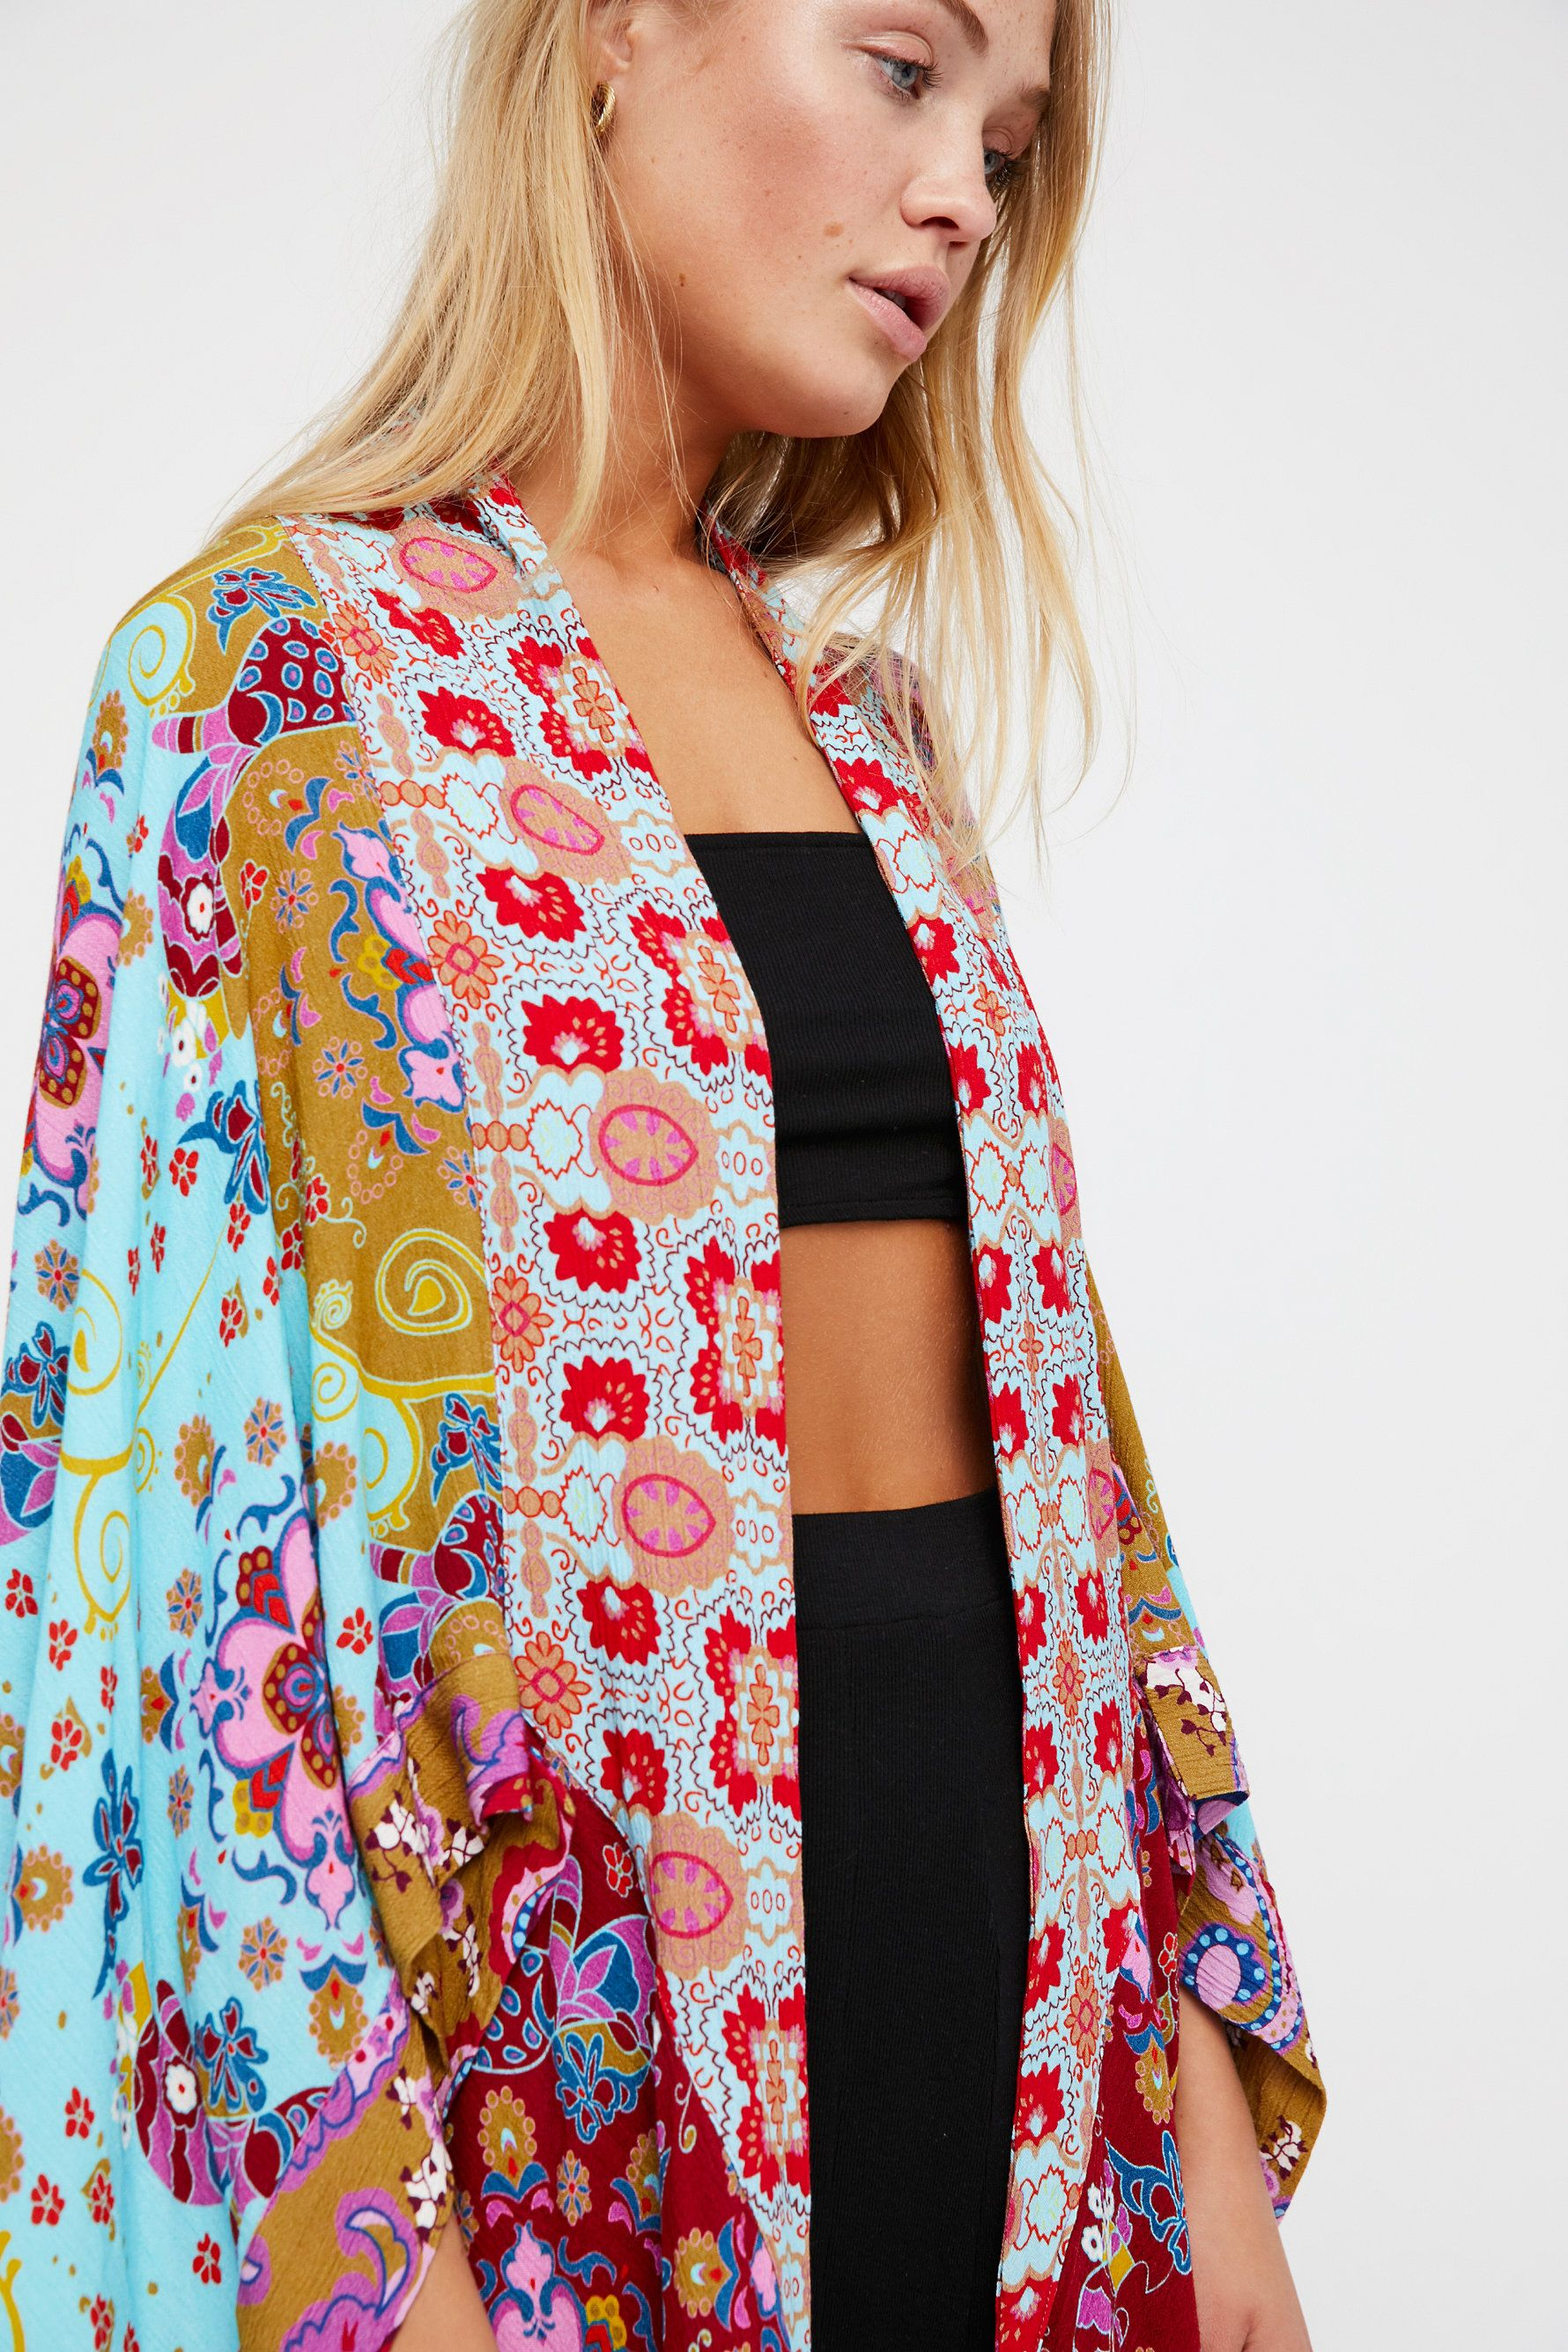 Little Wing Mix Print Kimono Beautiful Mixed Print Kimono Featuring An Effortless Drapey Fit With An Asymmetrical Hem And Back Cutout Details